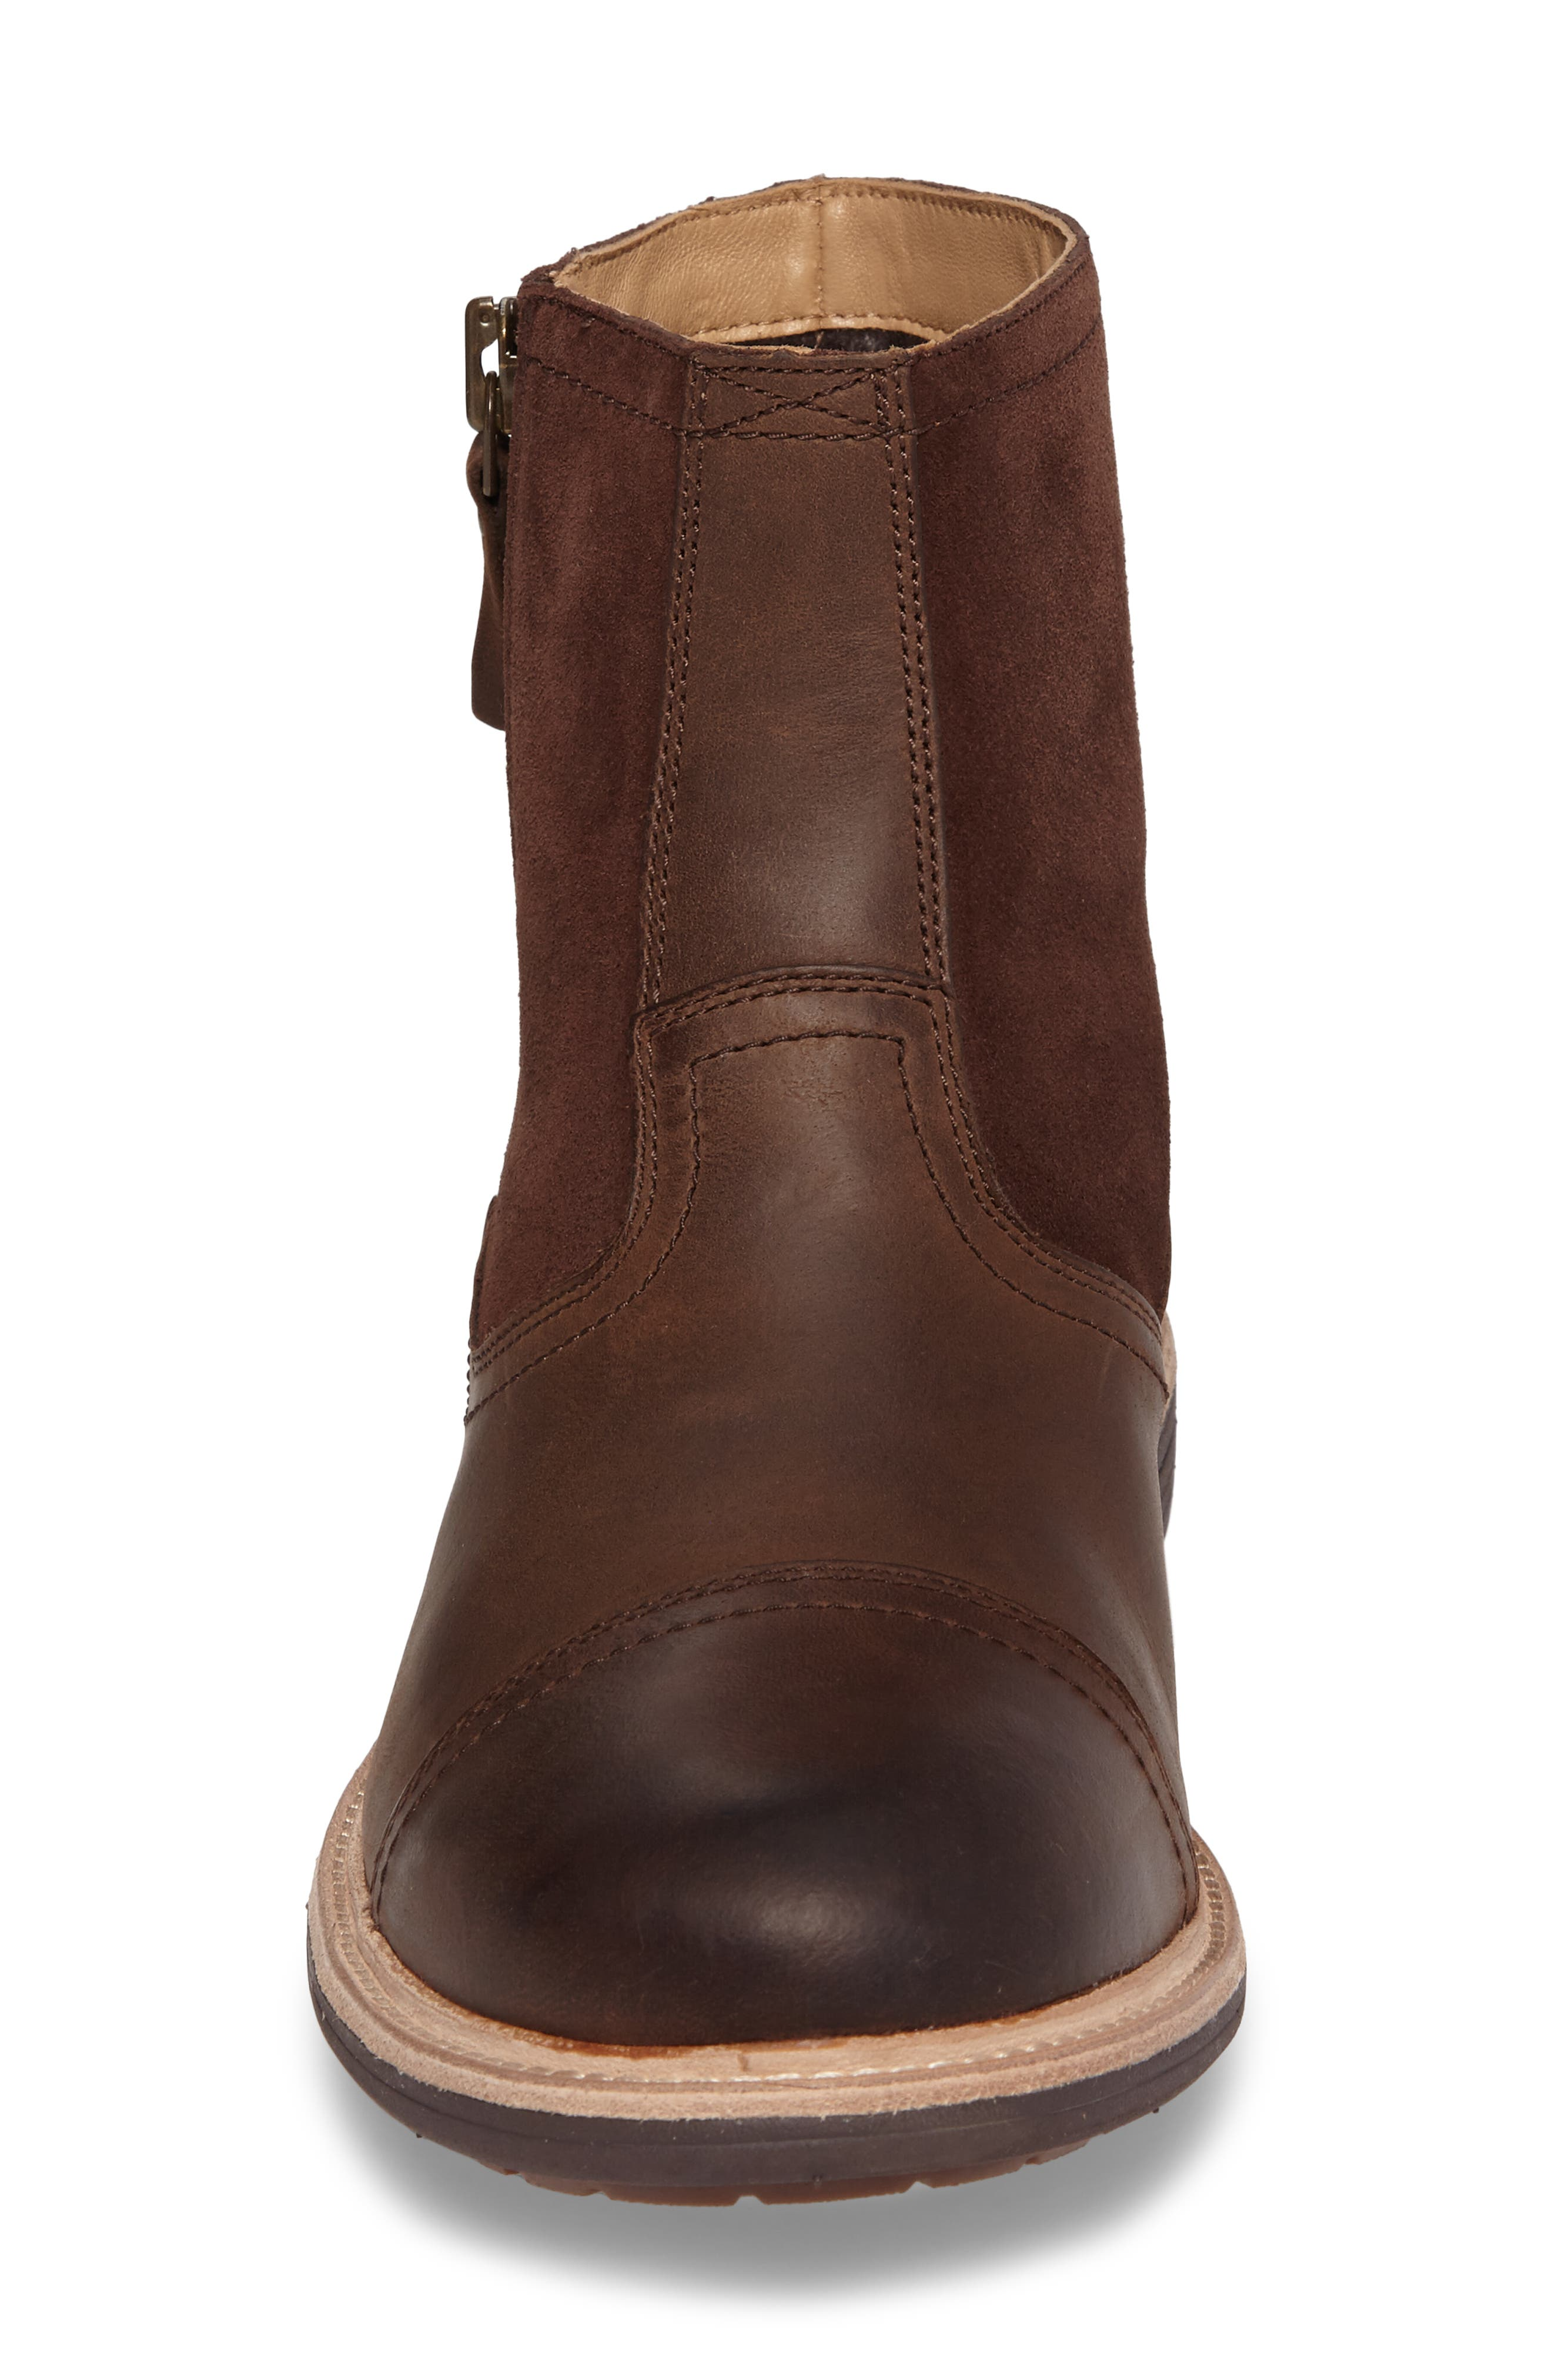 Dalvin Zip Boot with Genuine Shearling,                             Alternate thumbnail 4, color,                             Grizzly